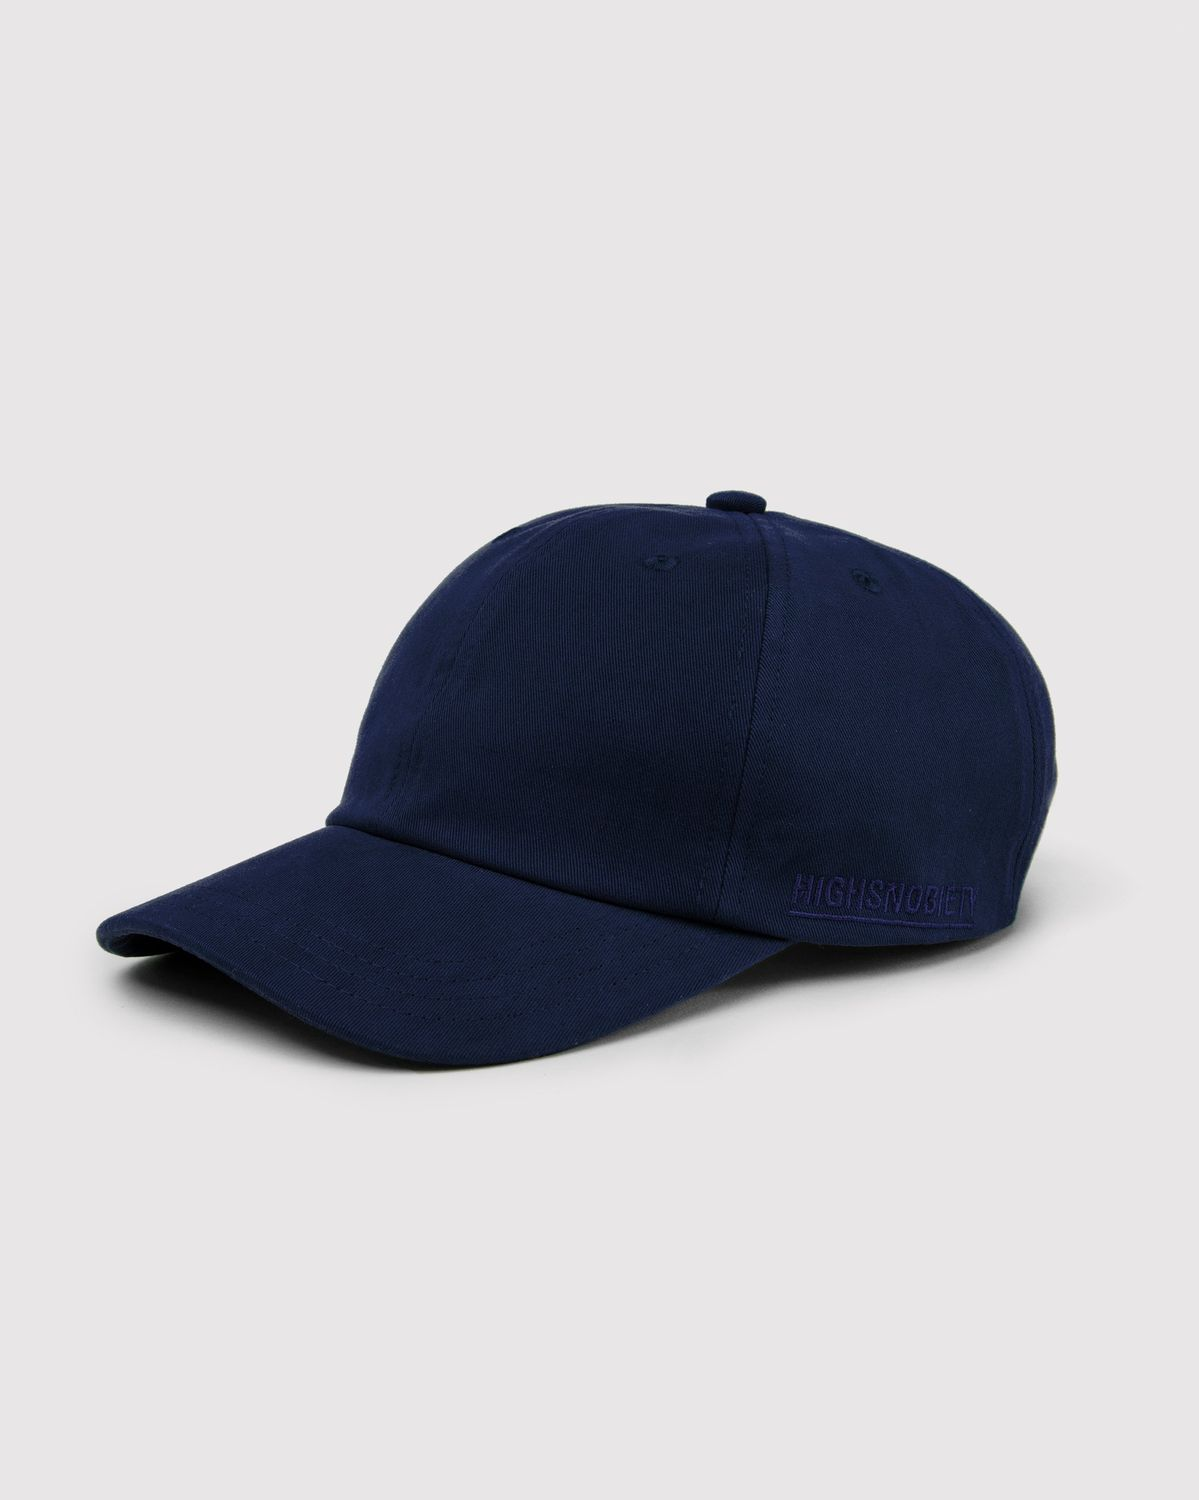 Highsnobiety Staples - Cap Navy - Image 1